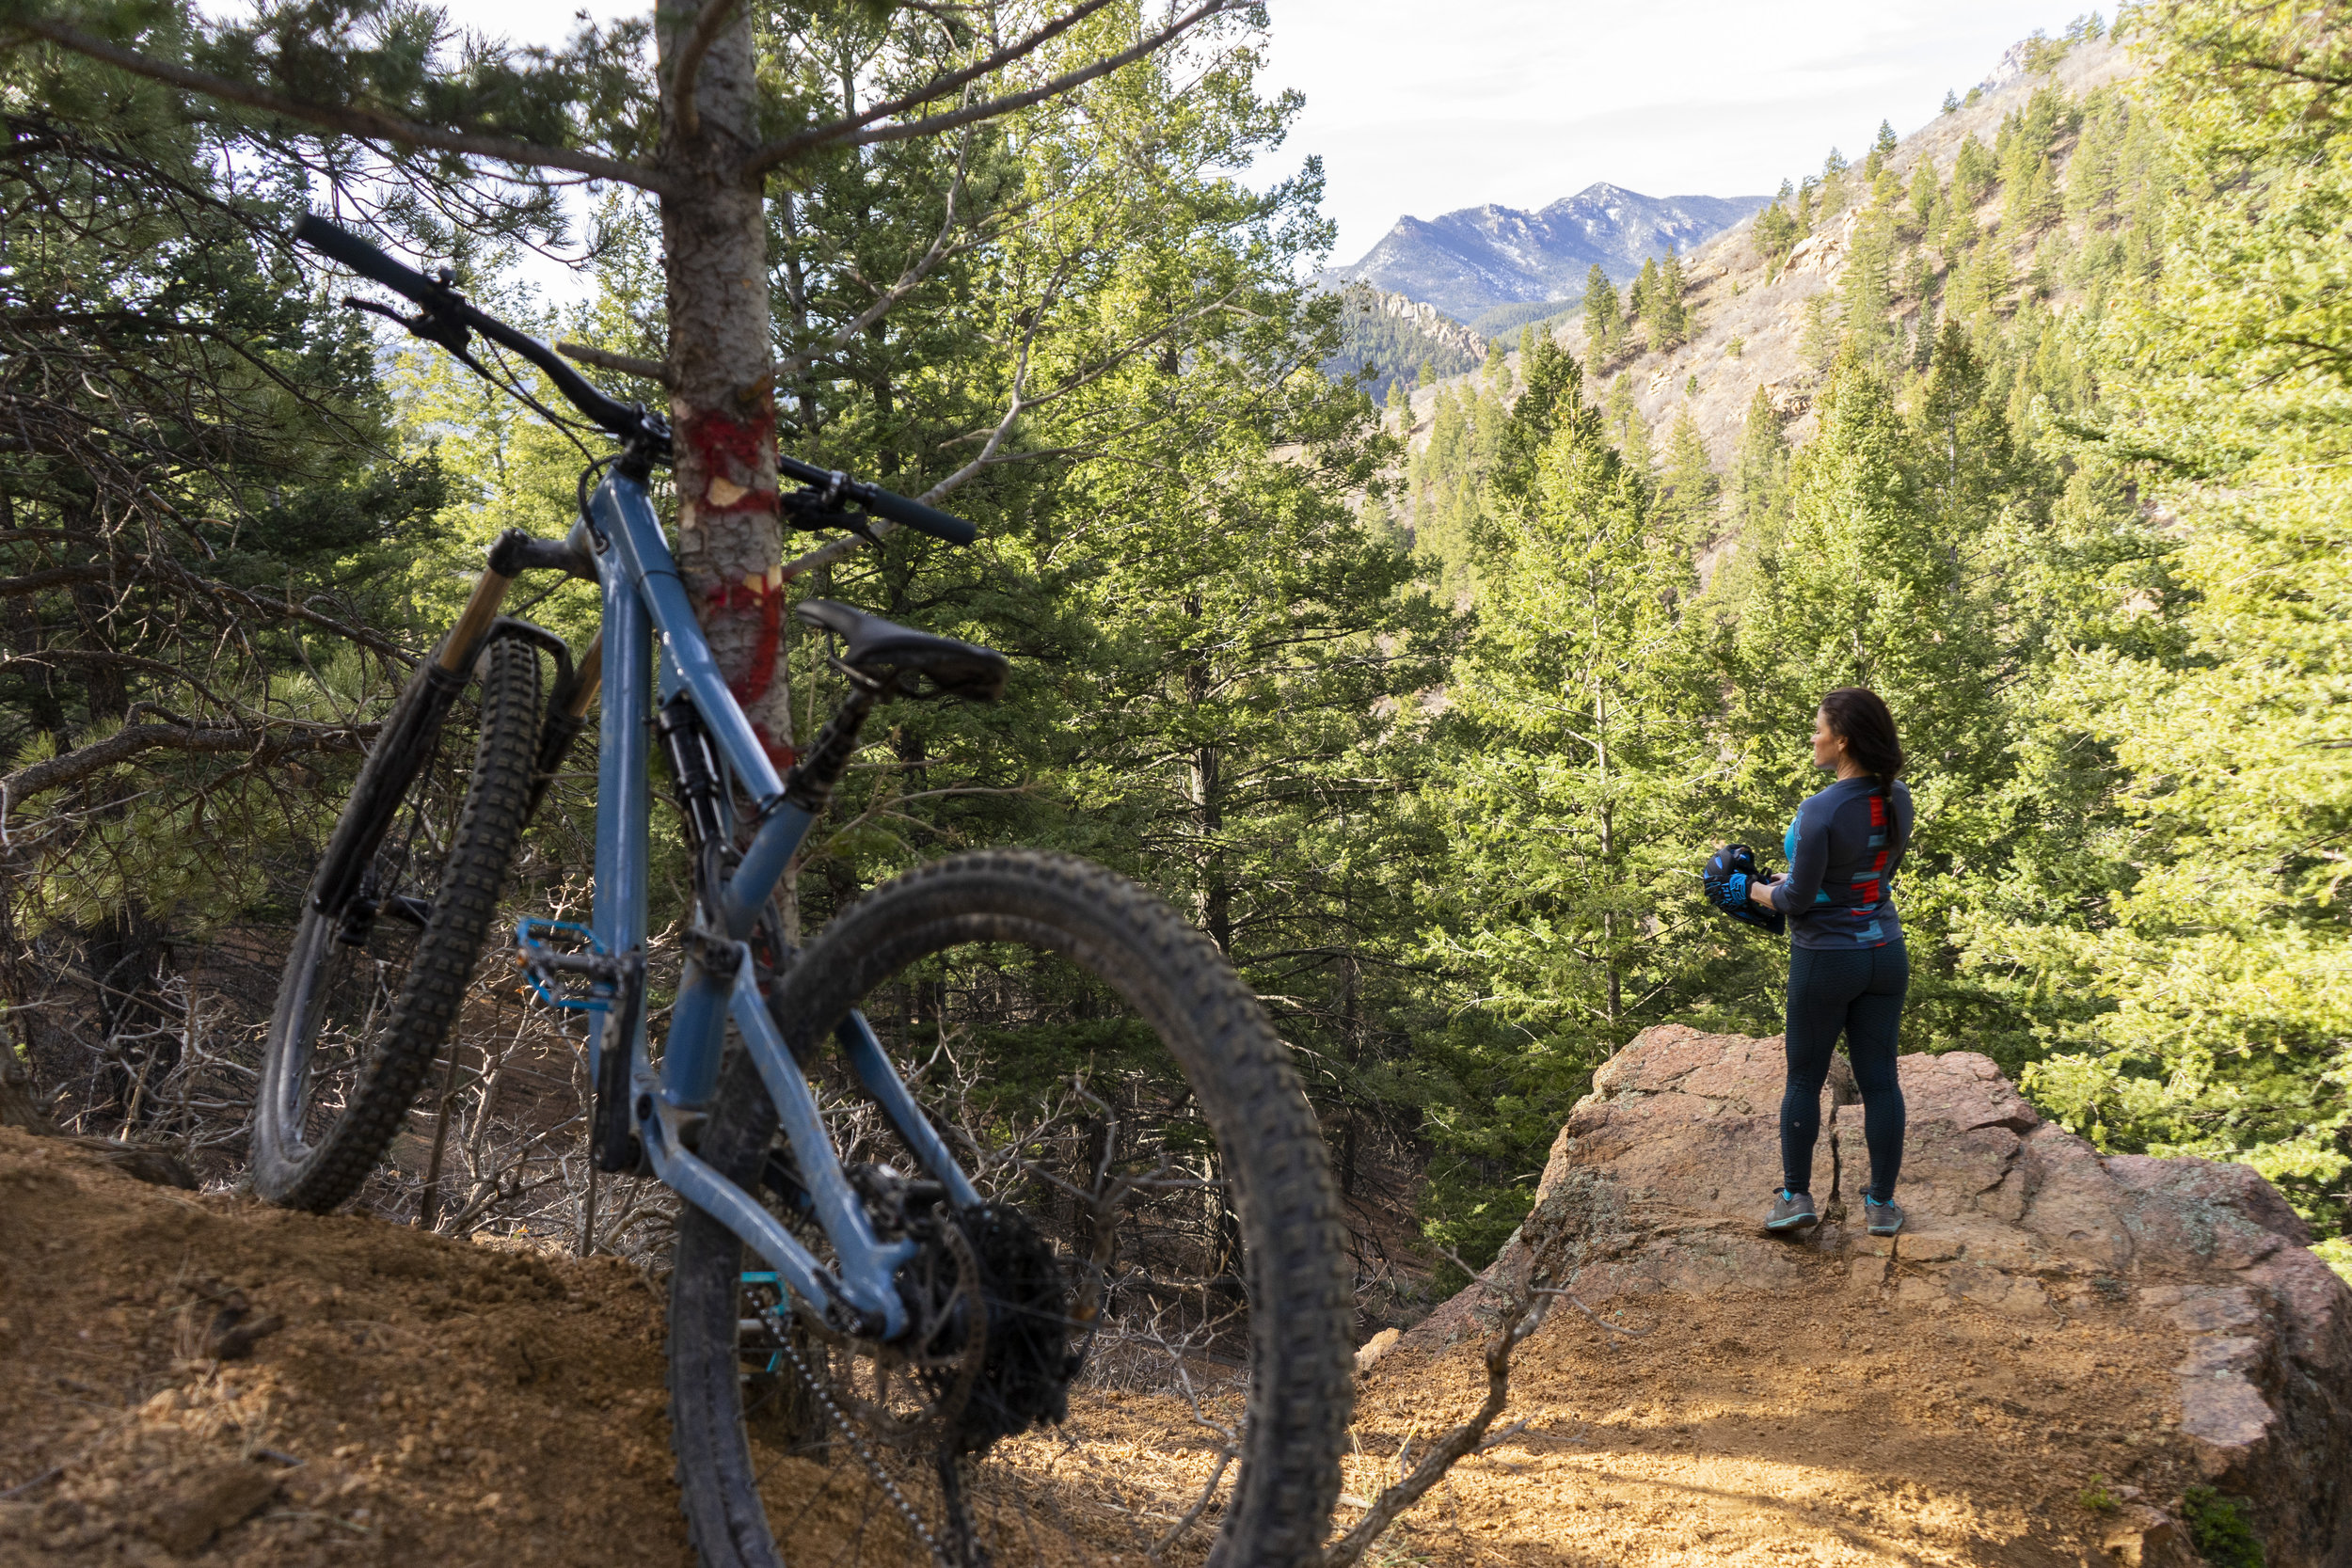 Tracy Mountain Biking on Cheyenne Mountain, Colorado Springs, Colorado 2019